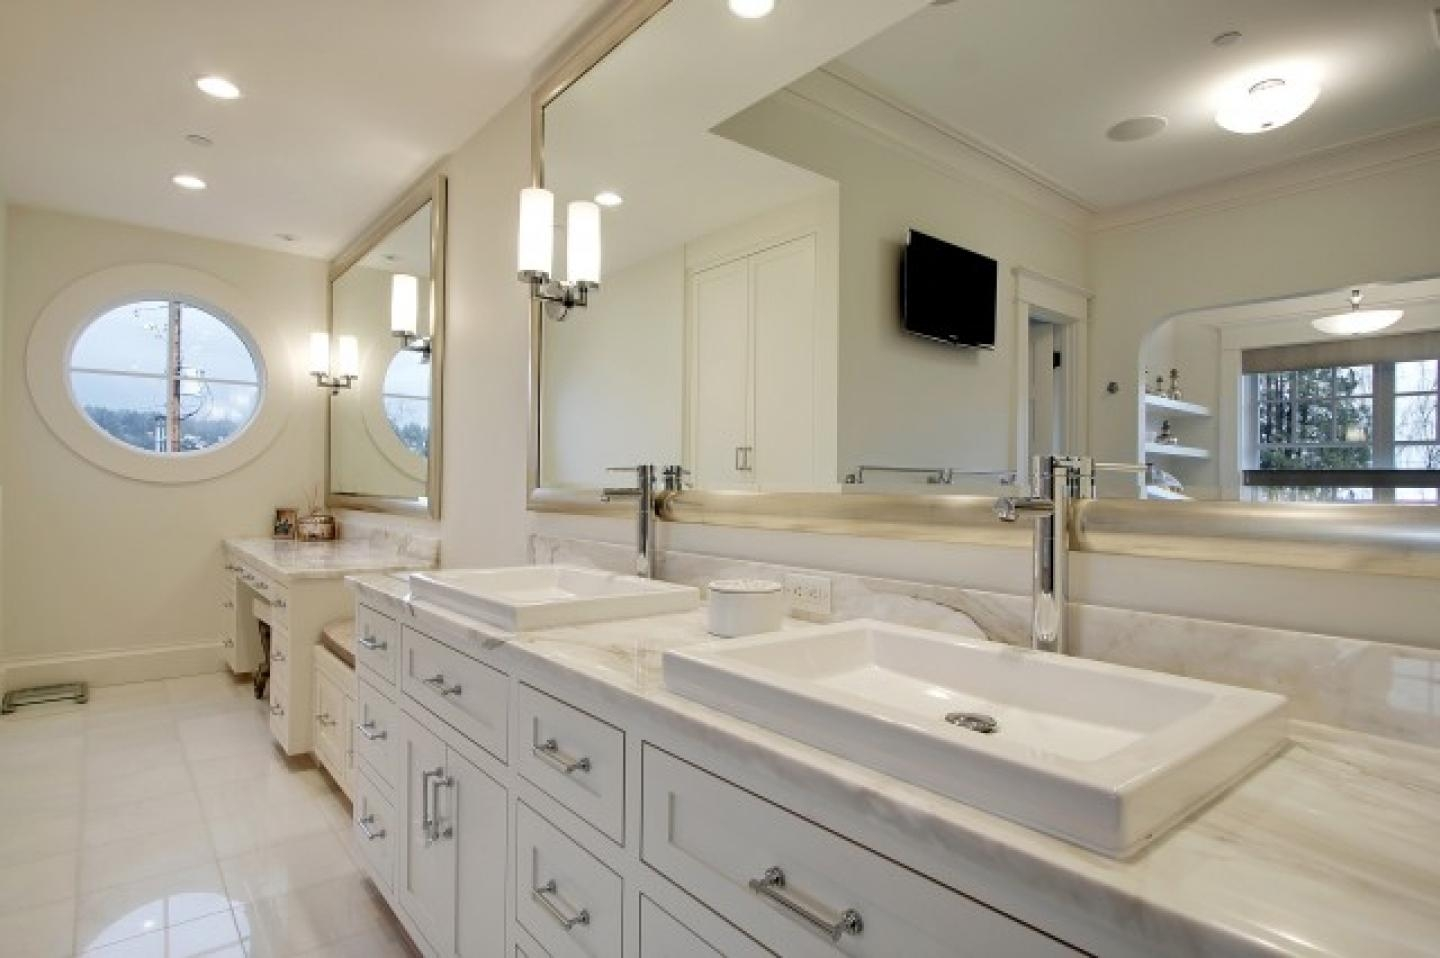 Large Commercial Bathroom Mirrors And Large Custom Bathroom Within Commercial Bathroom Mirrors (Image 17 of 20)